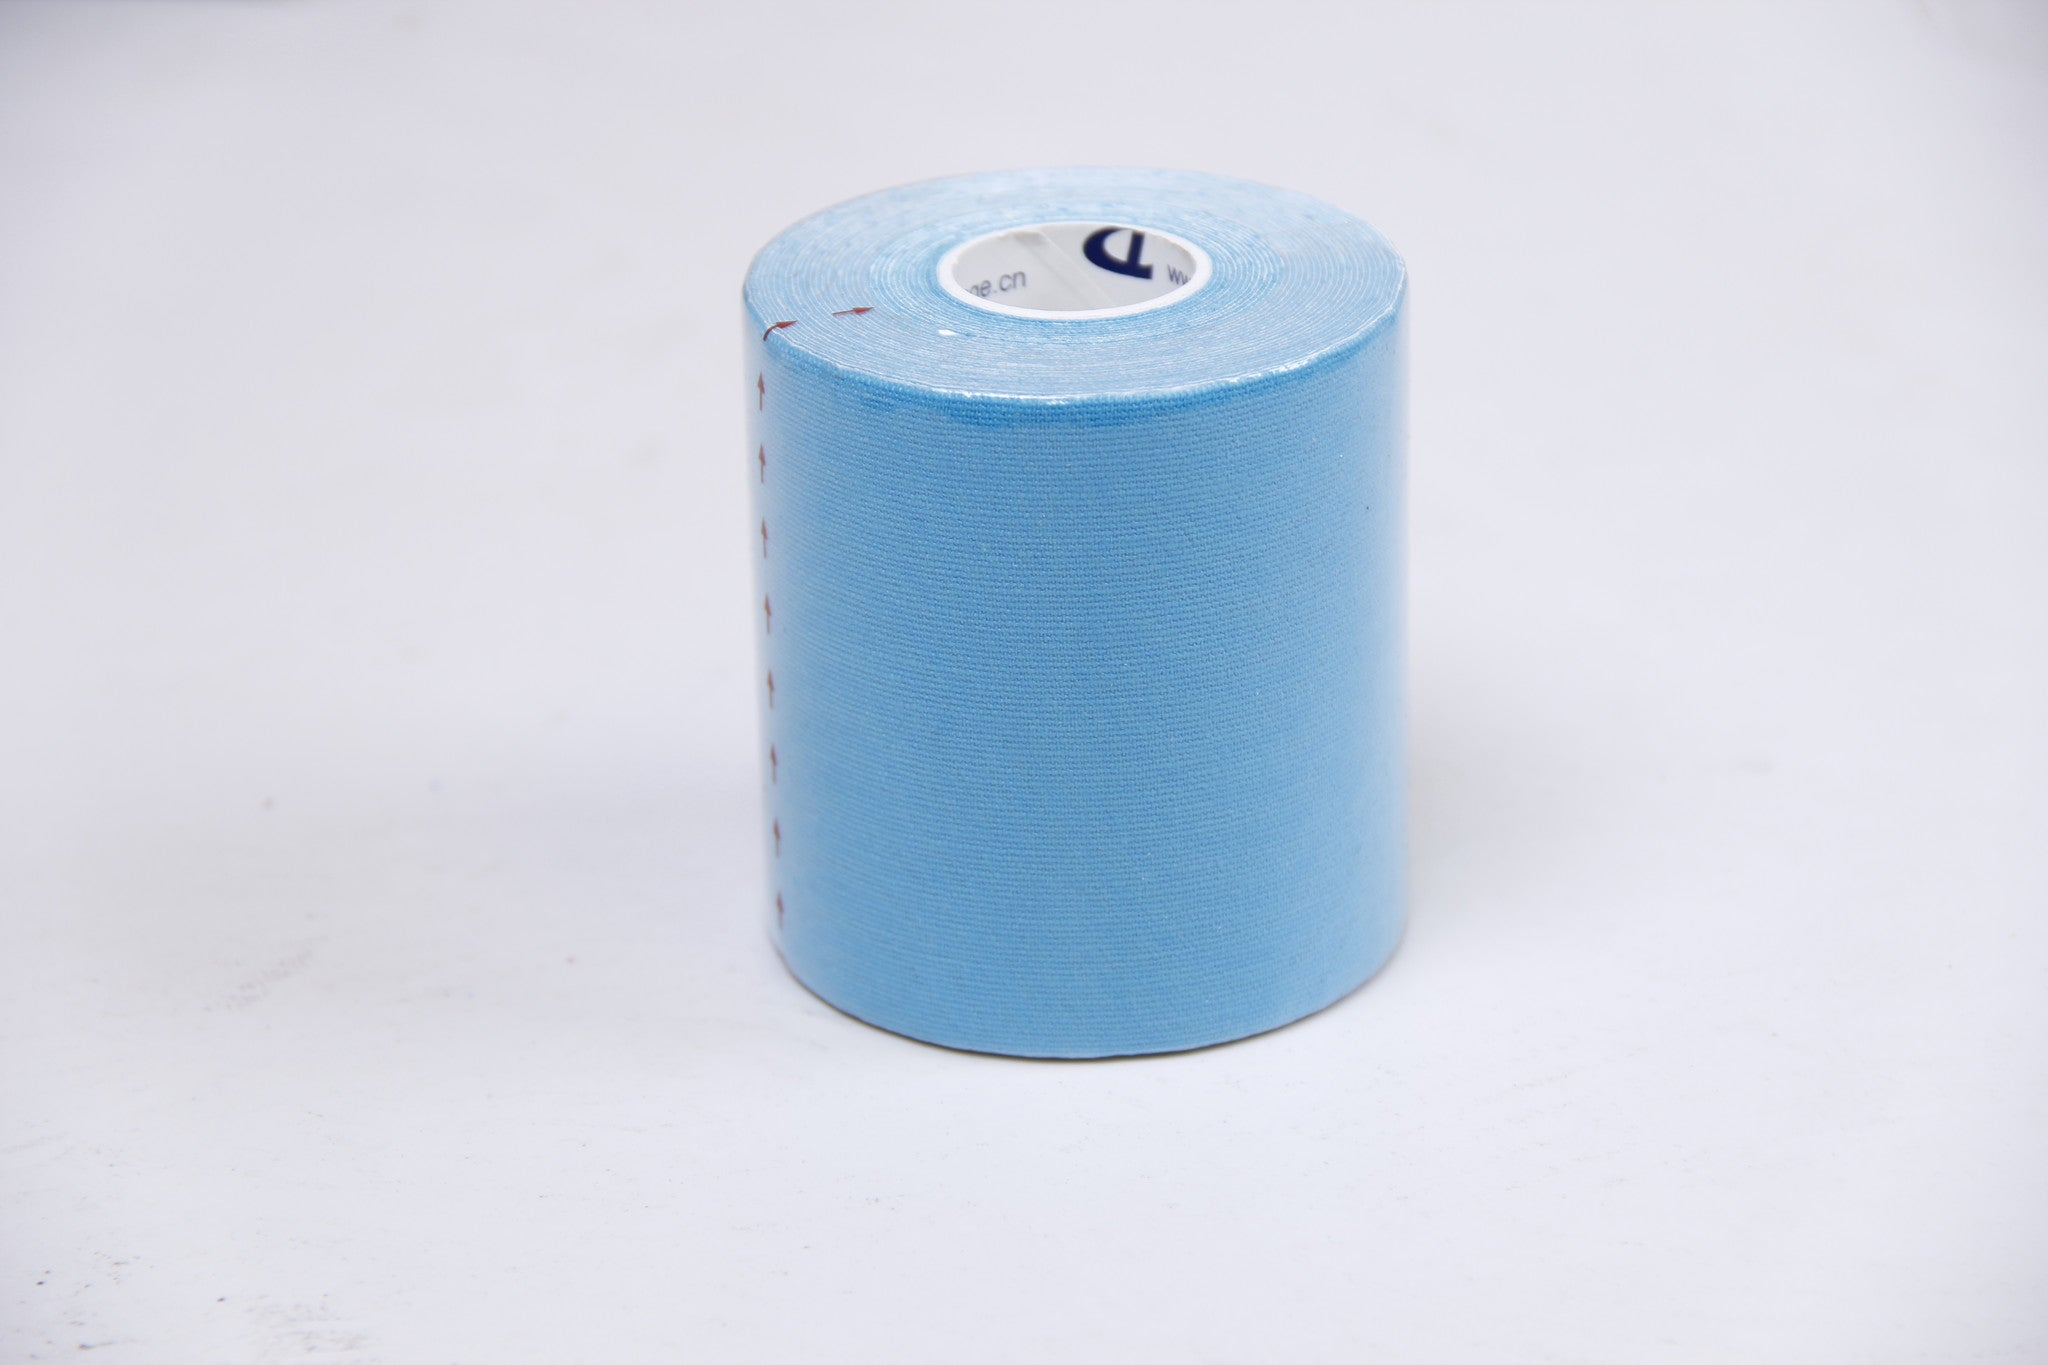 Cotton Kinesiology tape 2.5cm,3.8m,7.5m,10cm - DL0302 [FOB Price] - DL-  tapes and bandages manufacturer-Kintape Roll-Customizable Order Service-DLbandage